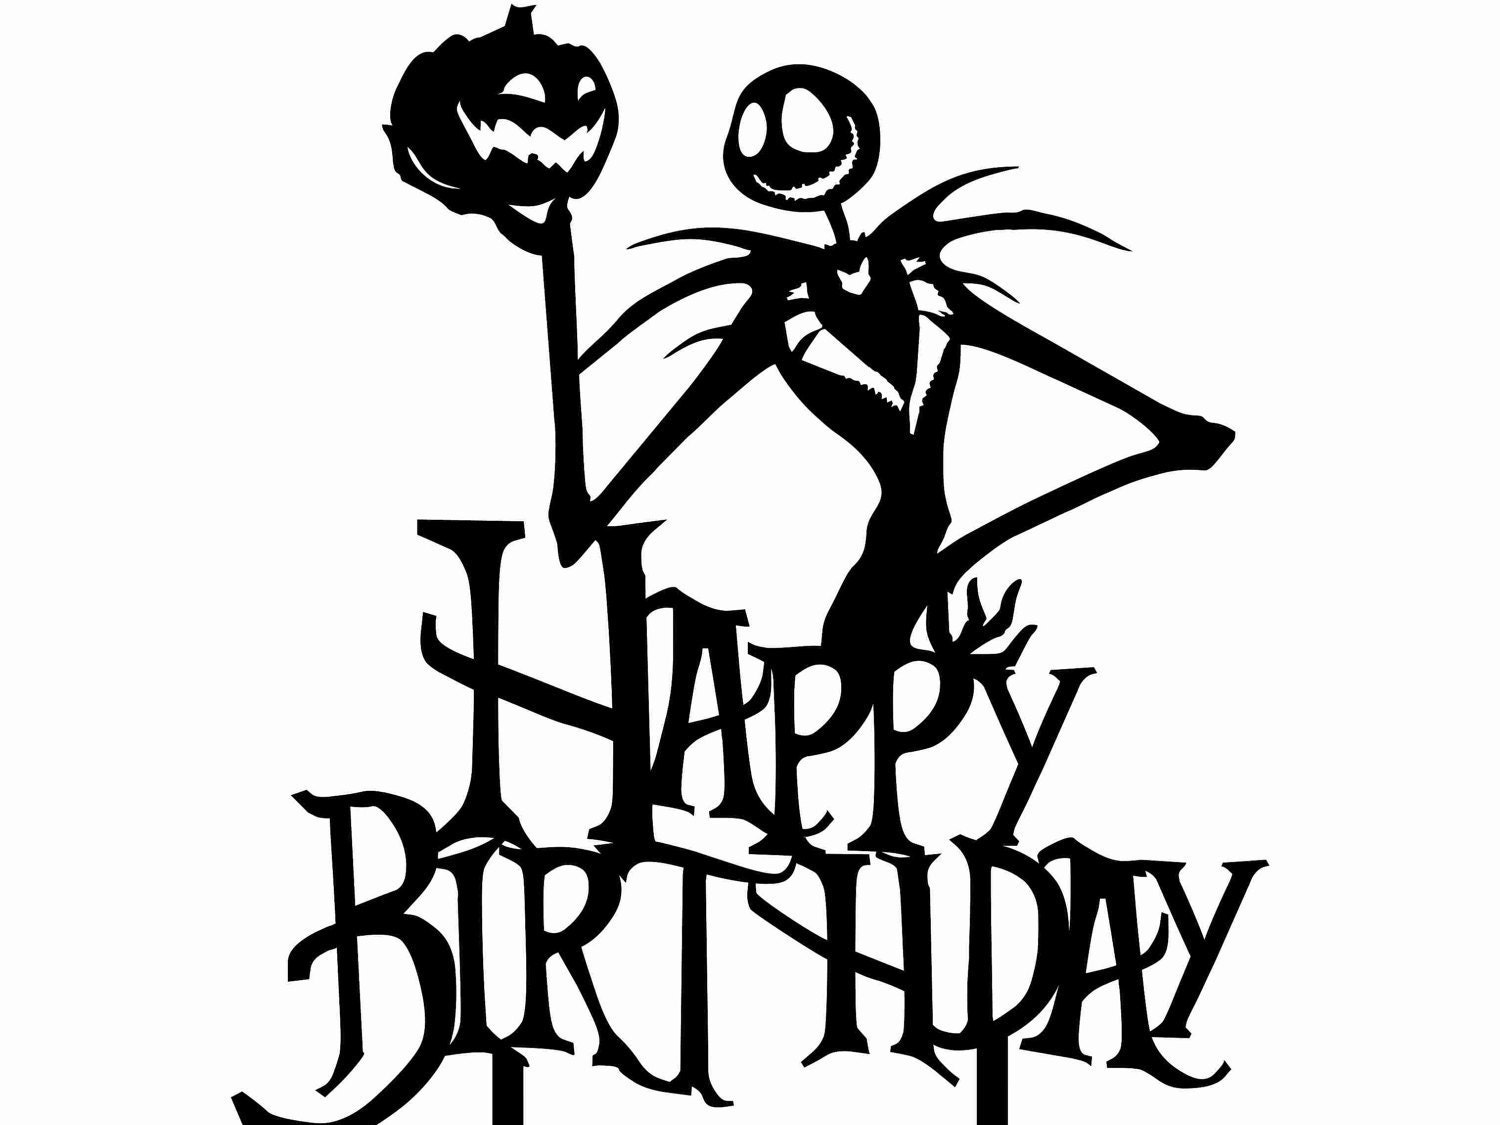 Buy 4 Get 1 Free Two Arrows Birthday furthermore Full Faces also Jack Skellington And Sally 301612137 in addition Jack Skellington Da Man 41856586 besides How To Draw Sally The Rag Doll. on jack skellington the pumpkin king drawings